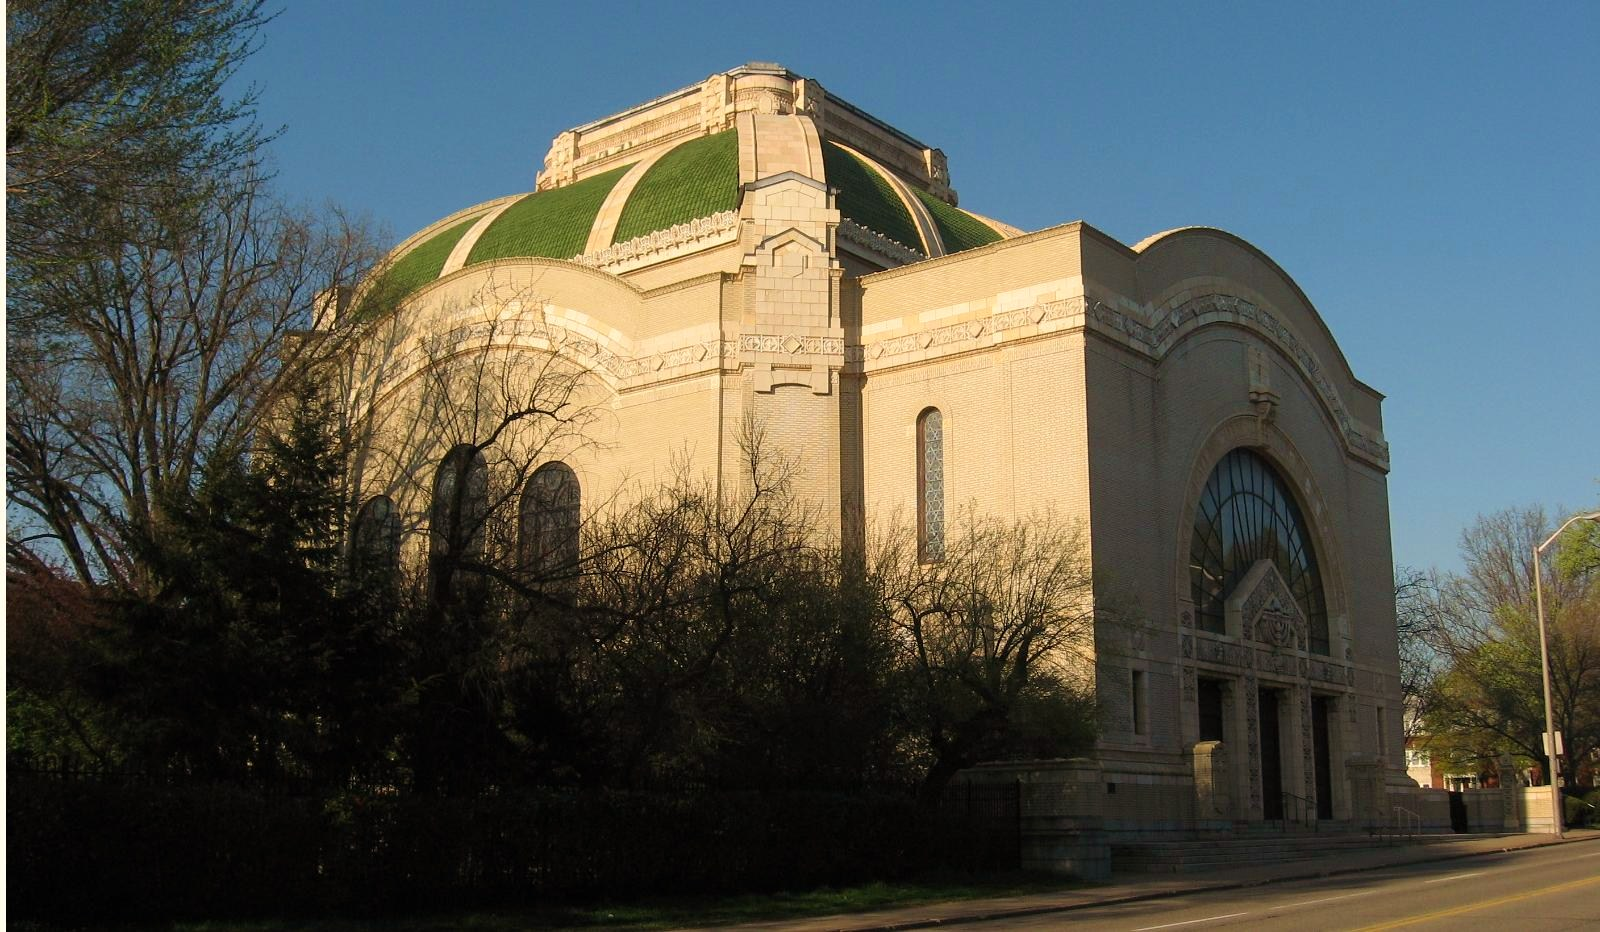 Rodef Shalom, view from Fifth Avenue